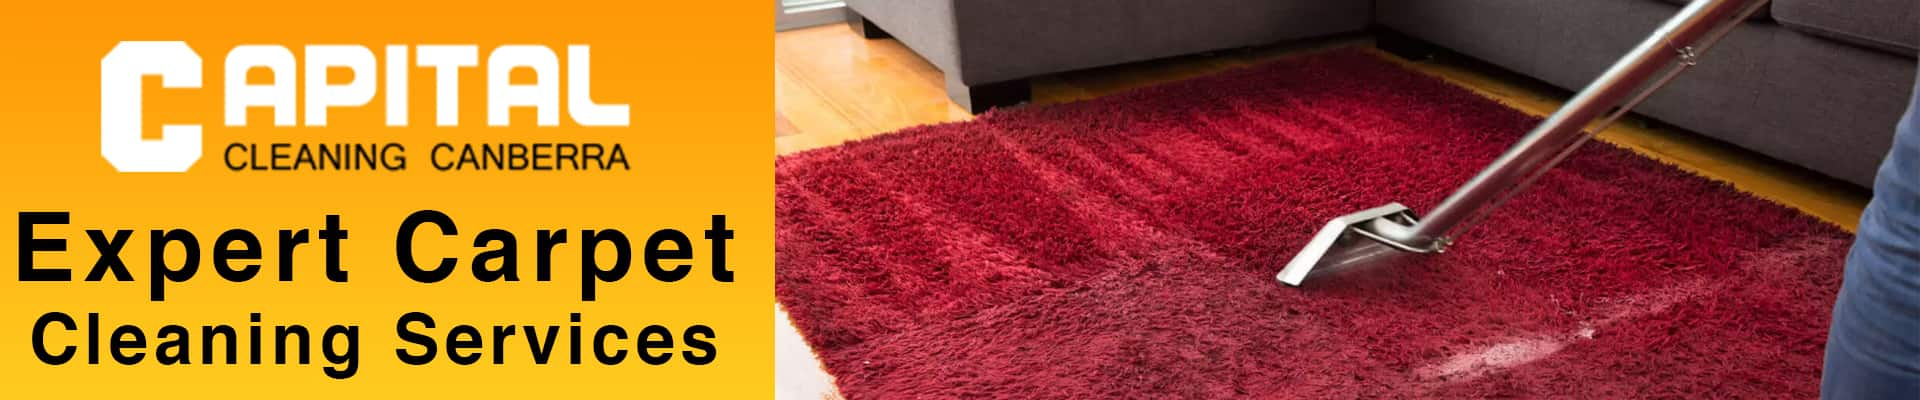 Expert Carpet Cleaning Services Downer